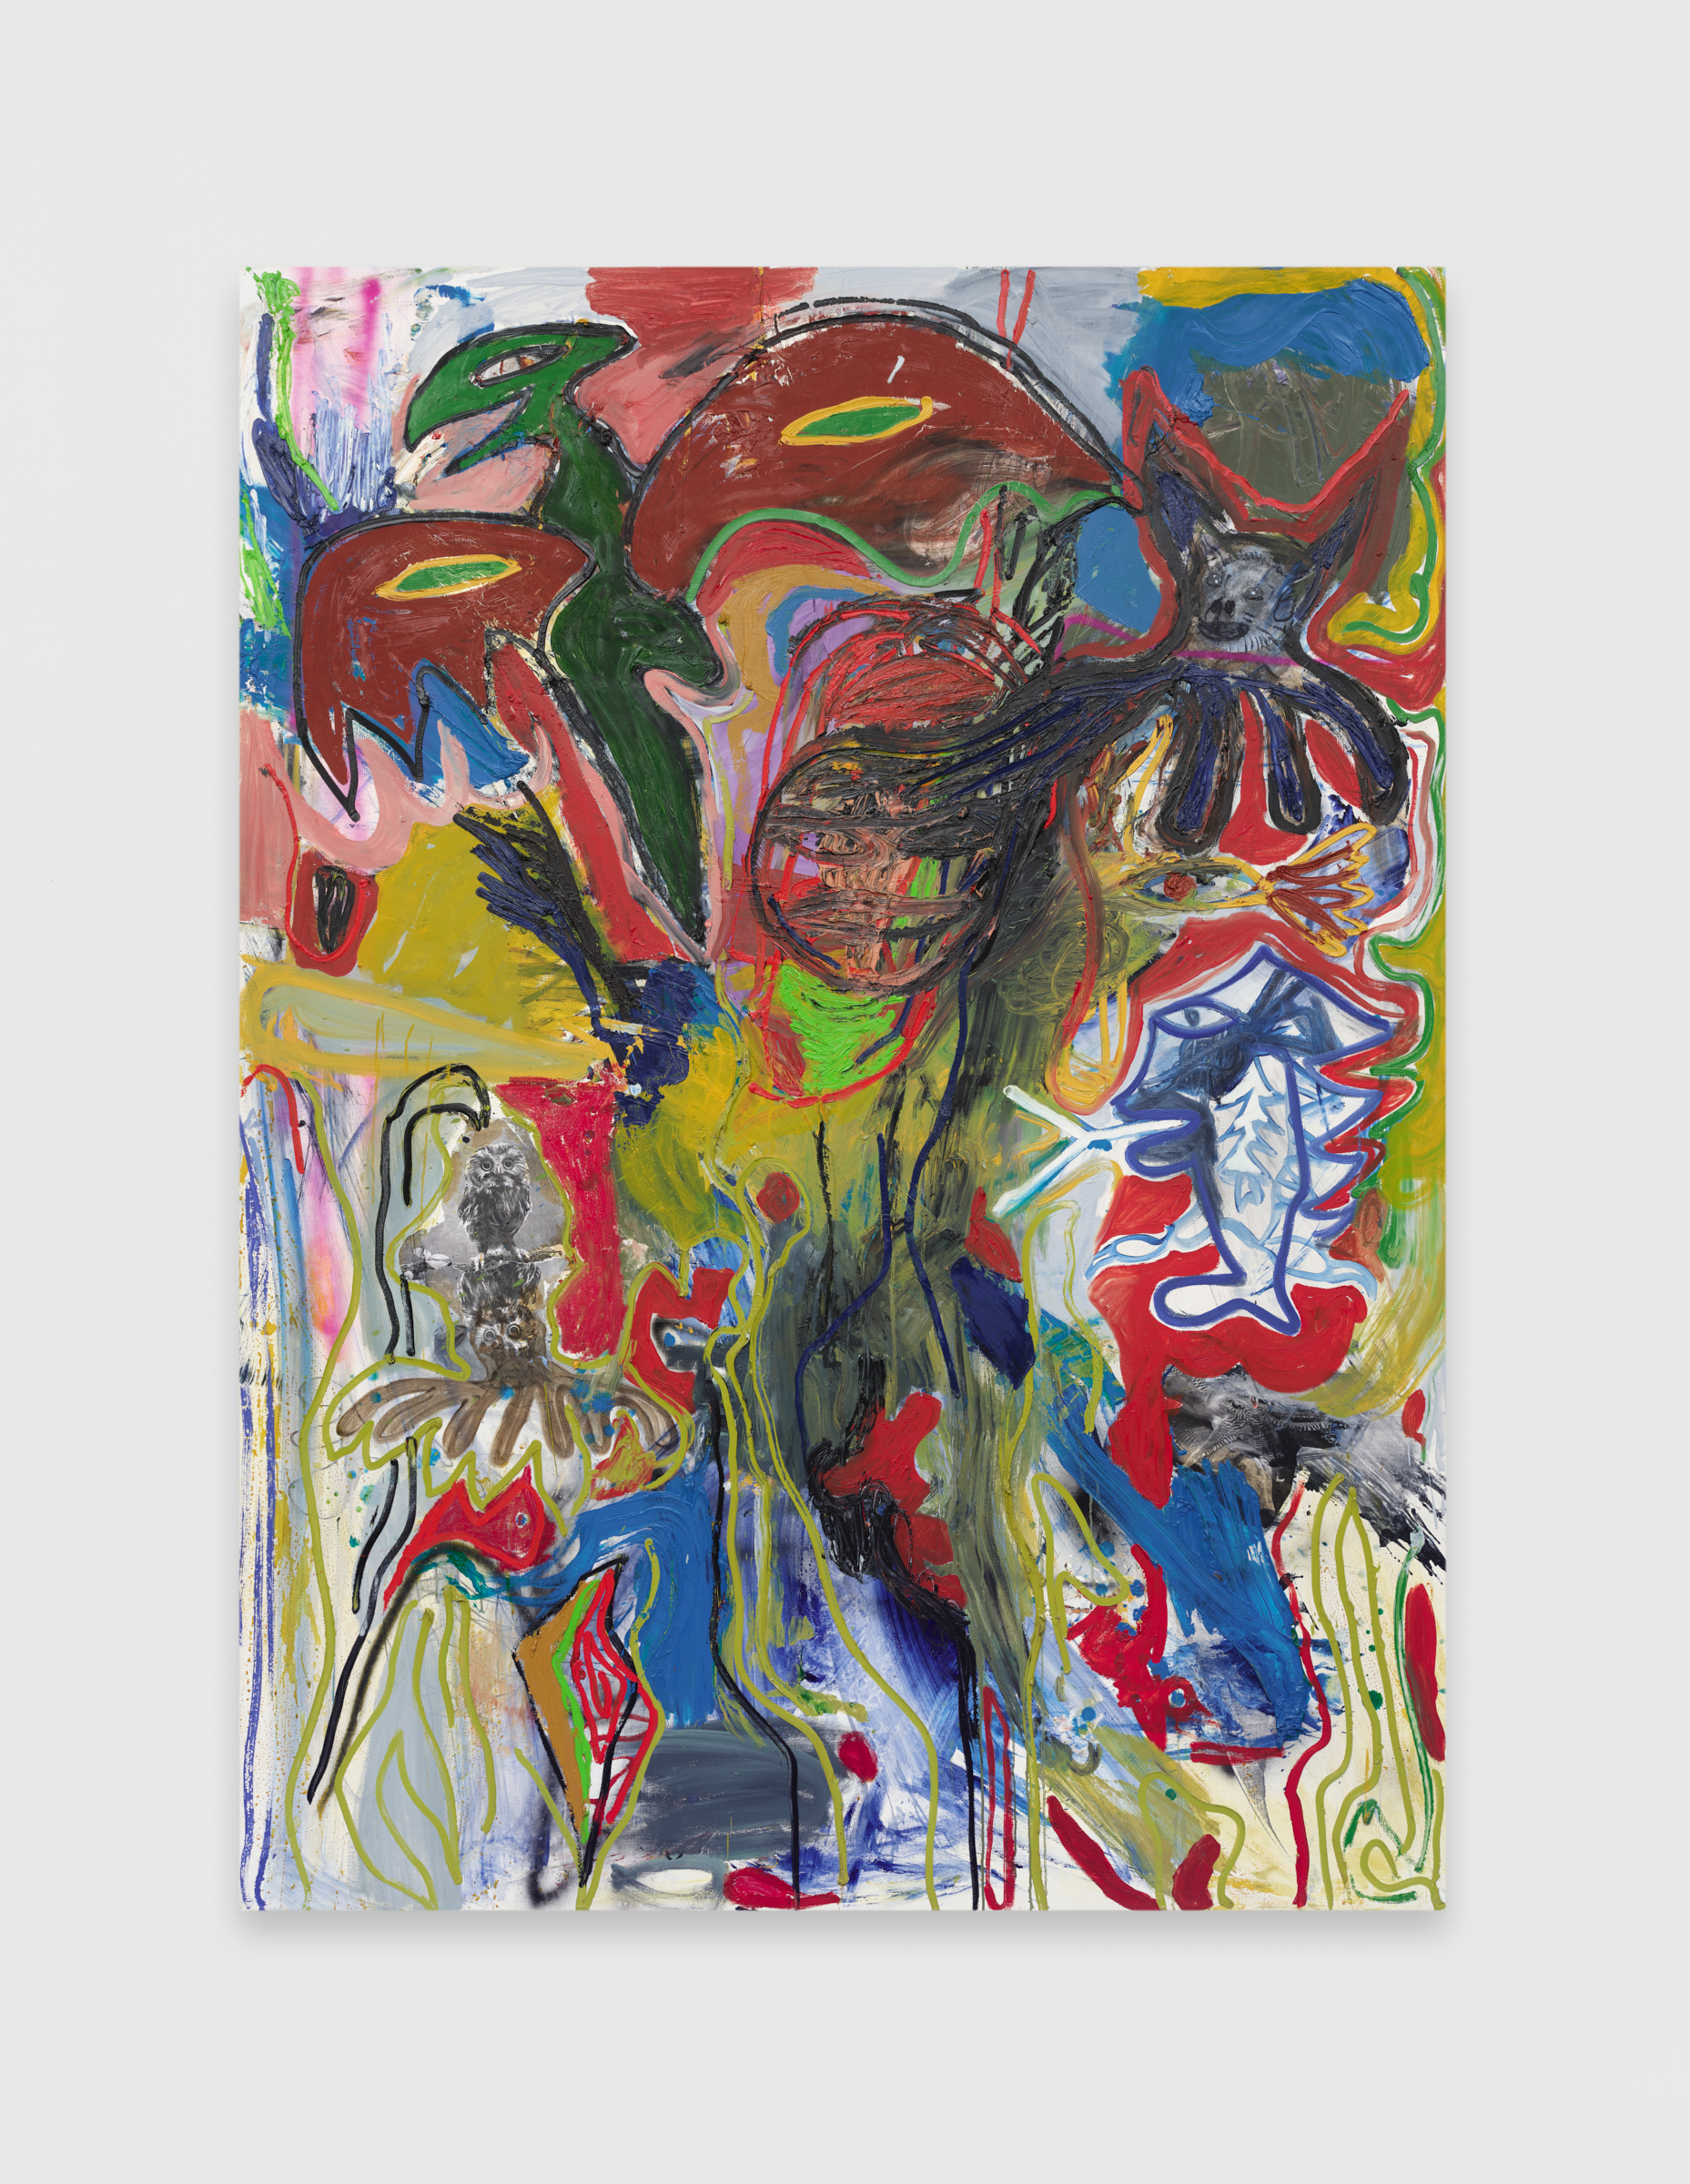 Bill Saylor, Strange Powers, 2015, Photo copy, oil, and spray paint on canvas, 87h x 64w in.